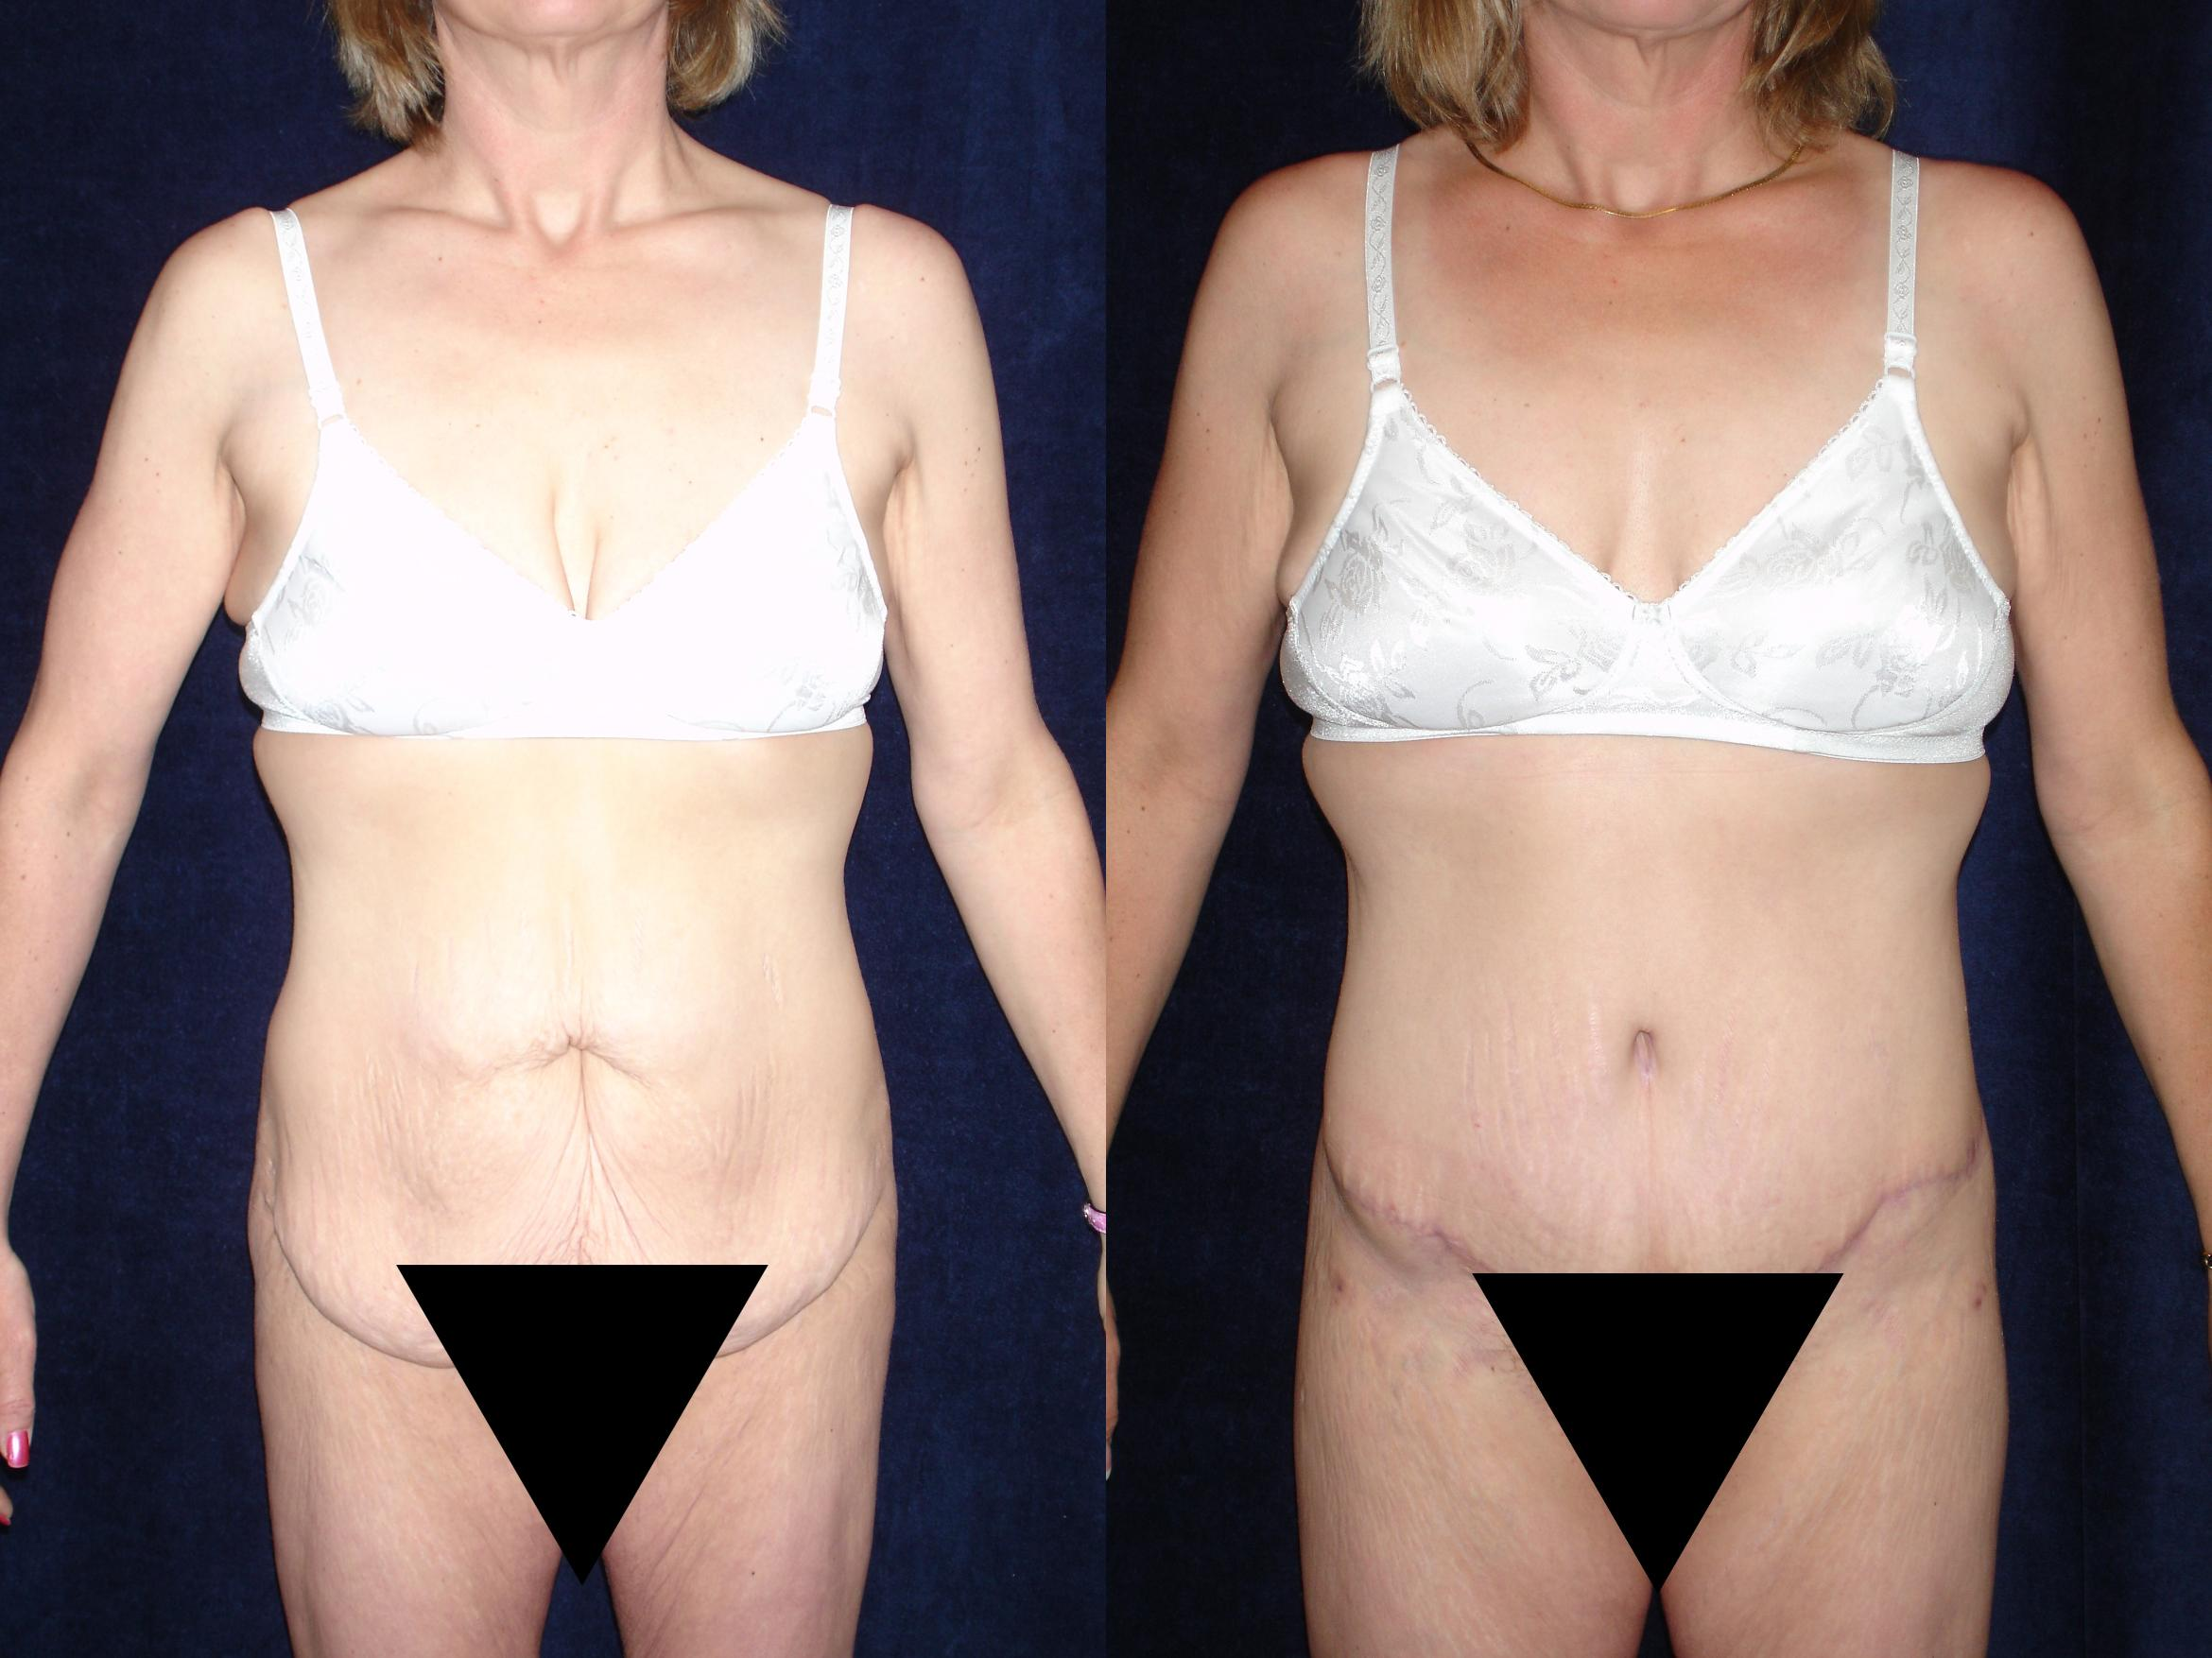 Body Contouring After Weight Loss For Northern California Kaiser